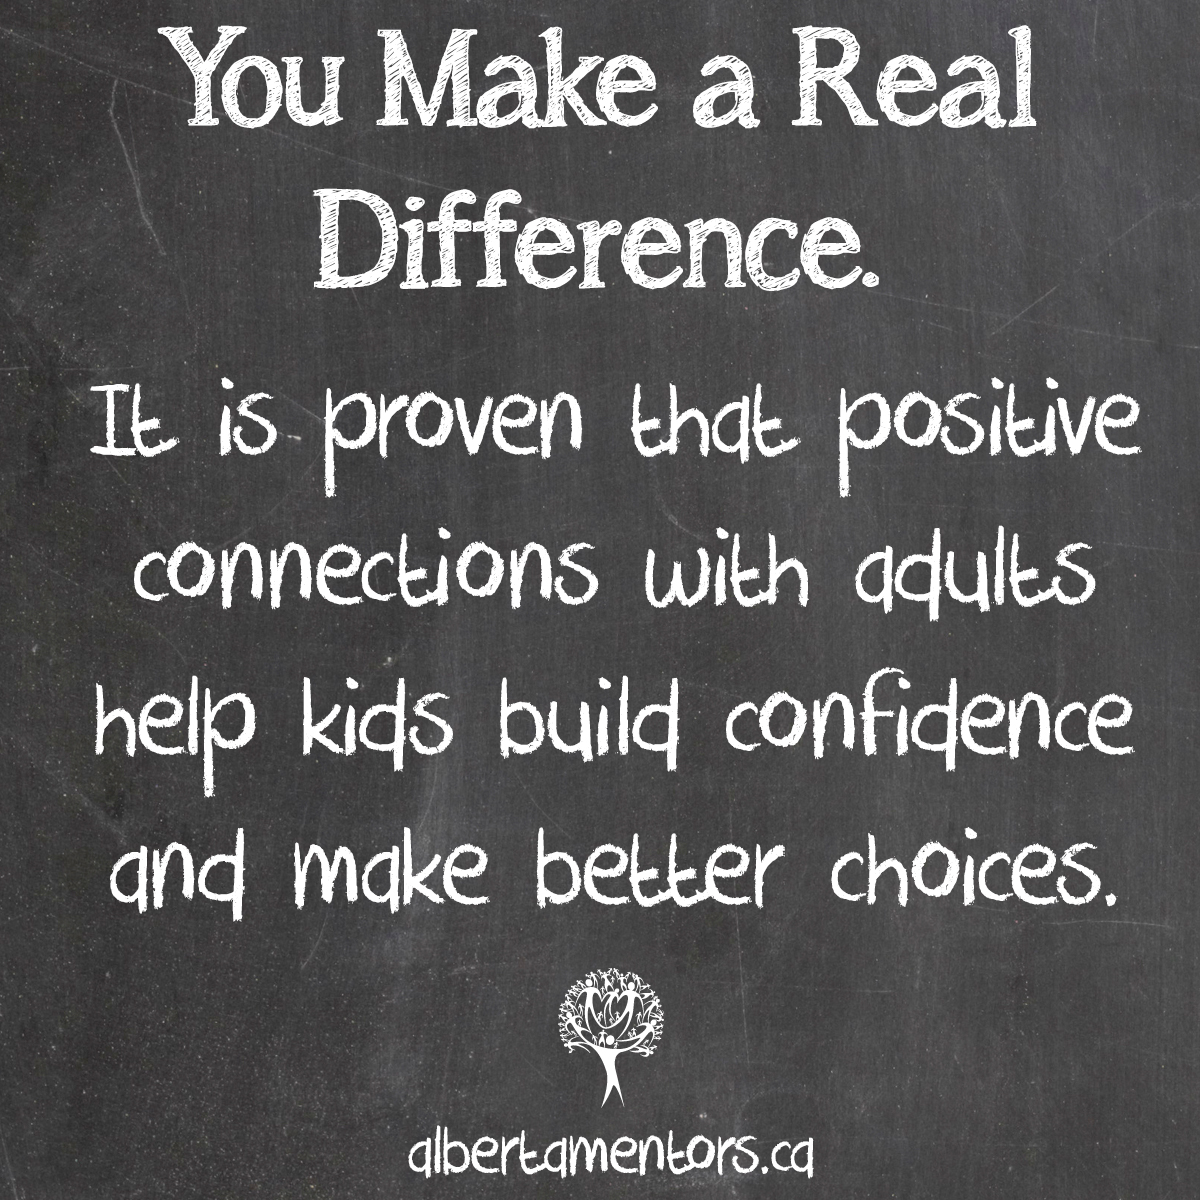 You Make a Real Difference